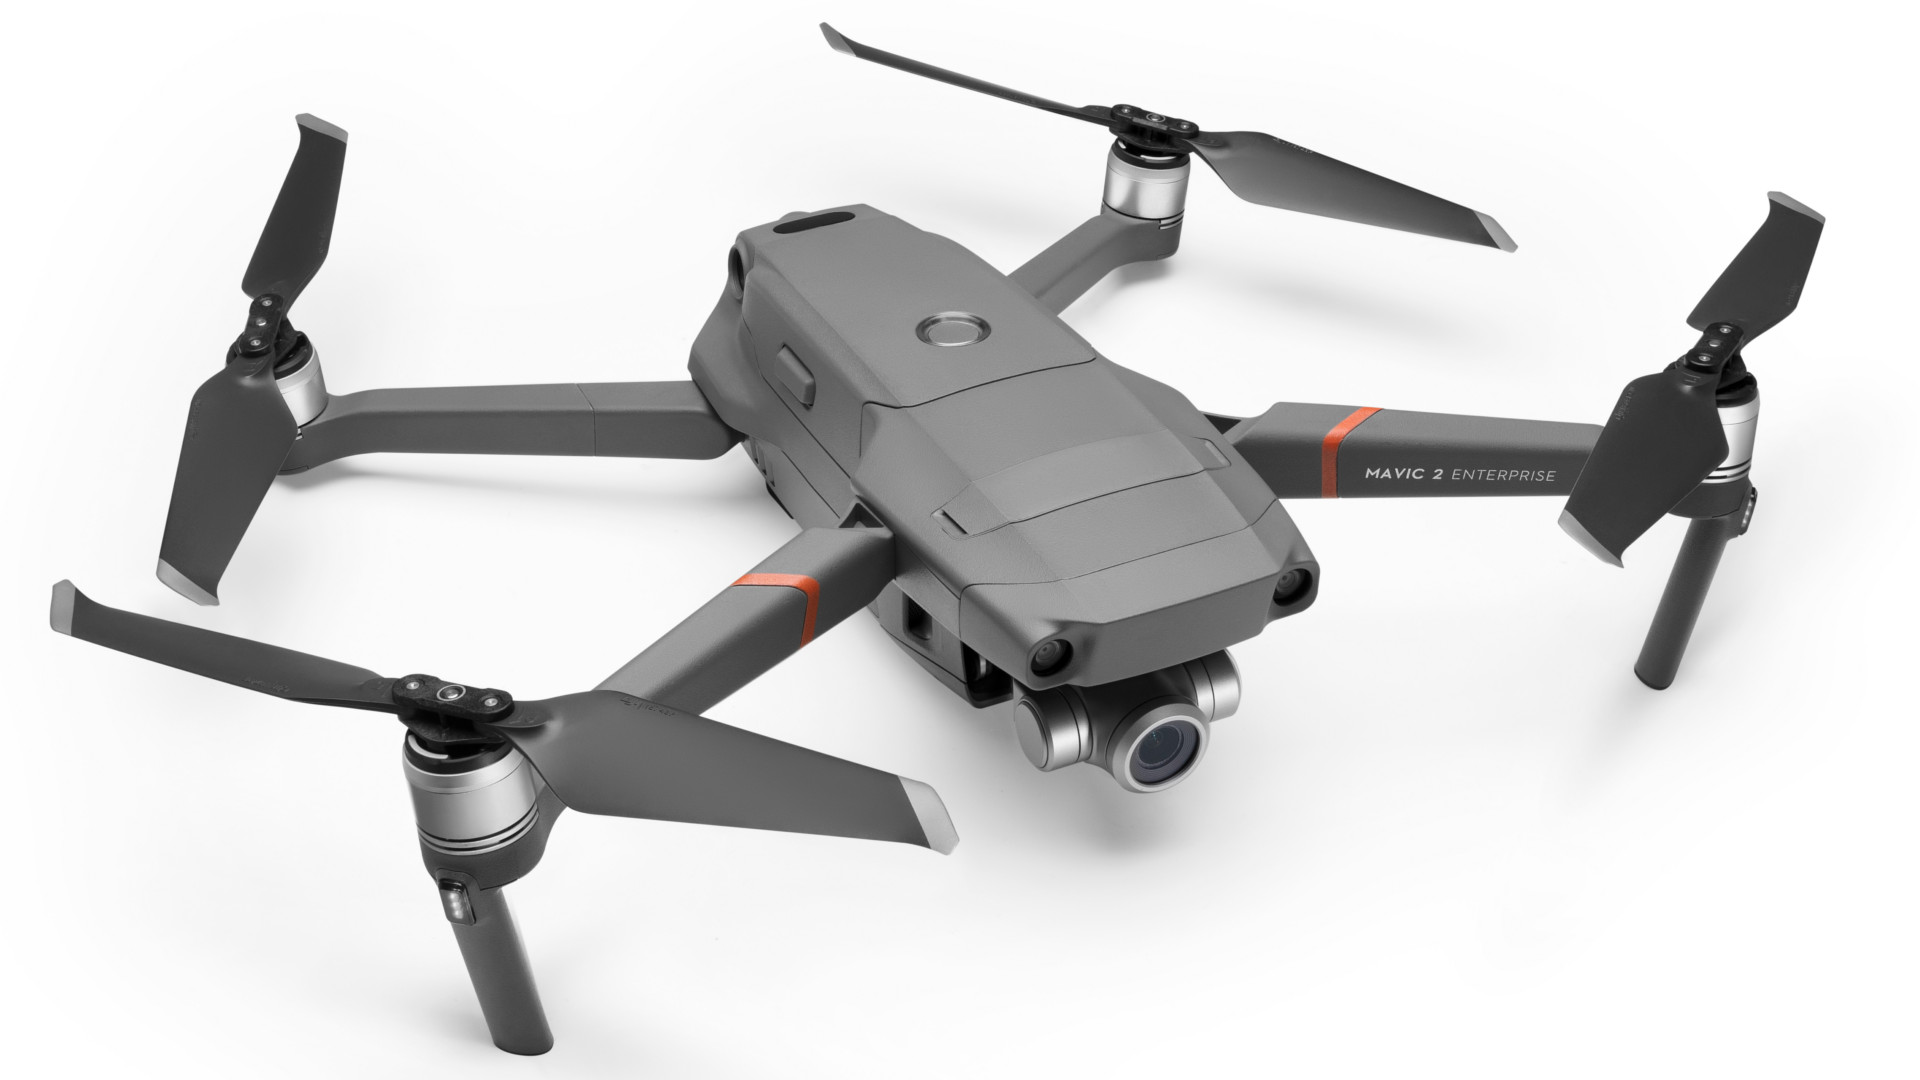 DJI Mavic 2 Enterprise unfolded top